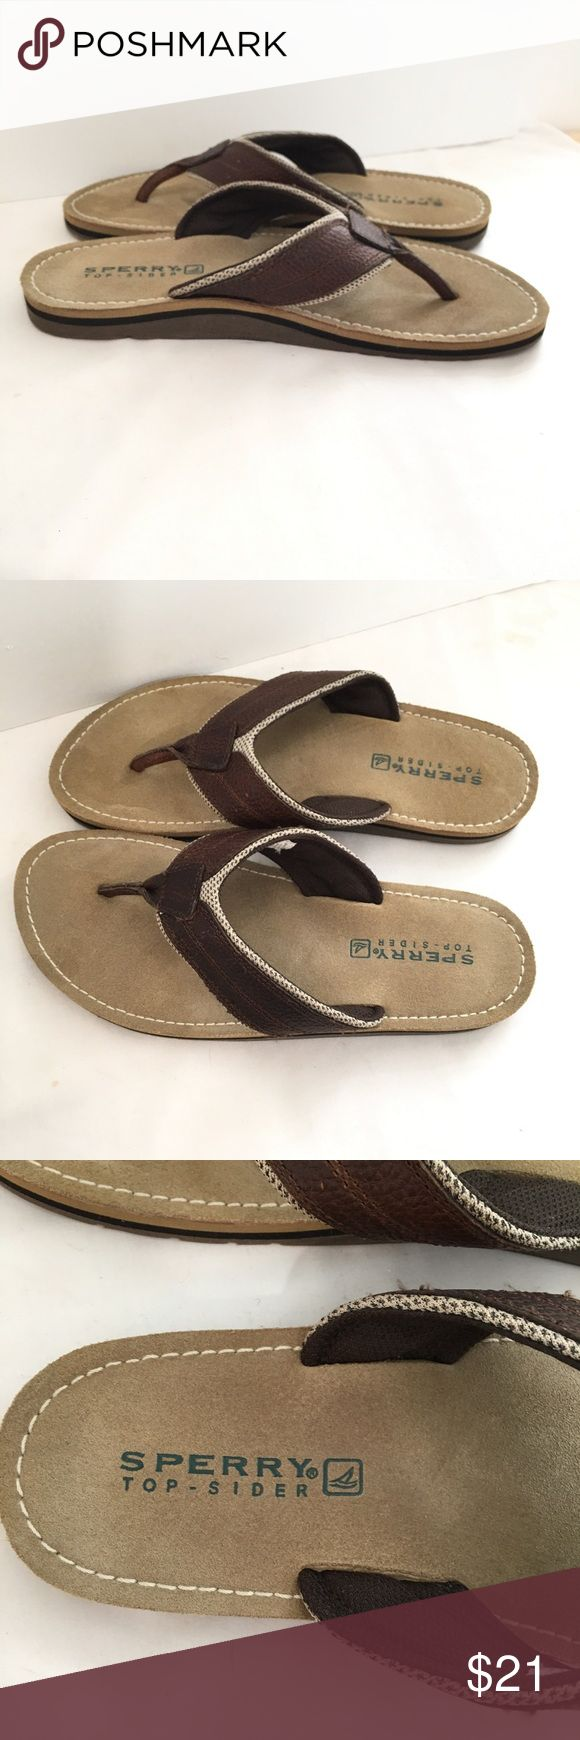 Sperry Top Sider Men's Flip Flops Good preowned condition Sz 11 Brown and Tan Thongs Sperry Top-Sider Shoes Sandals & Flip-Flops